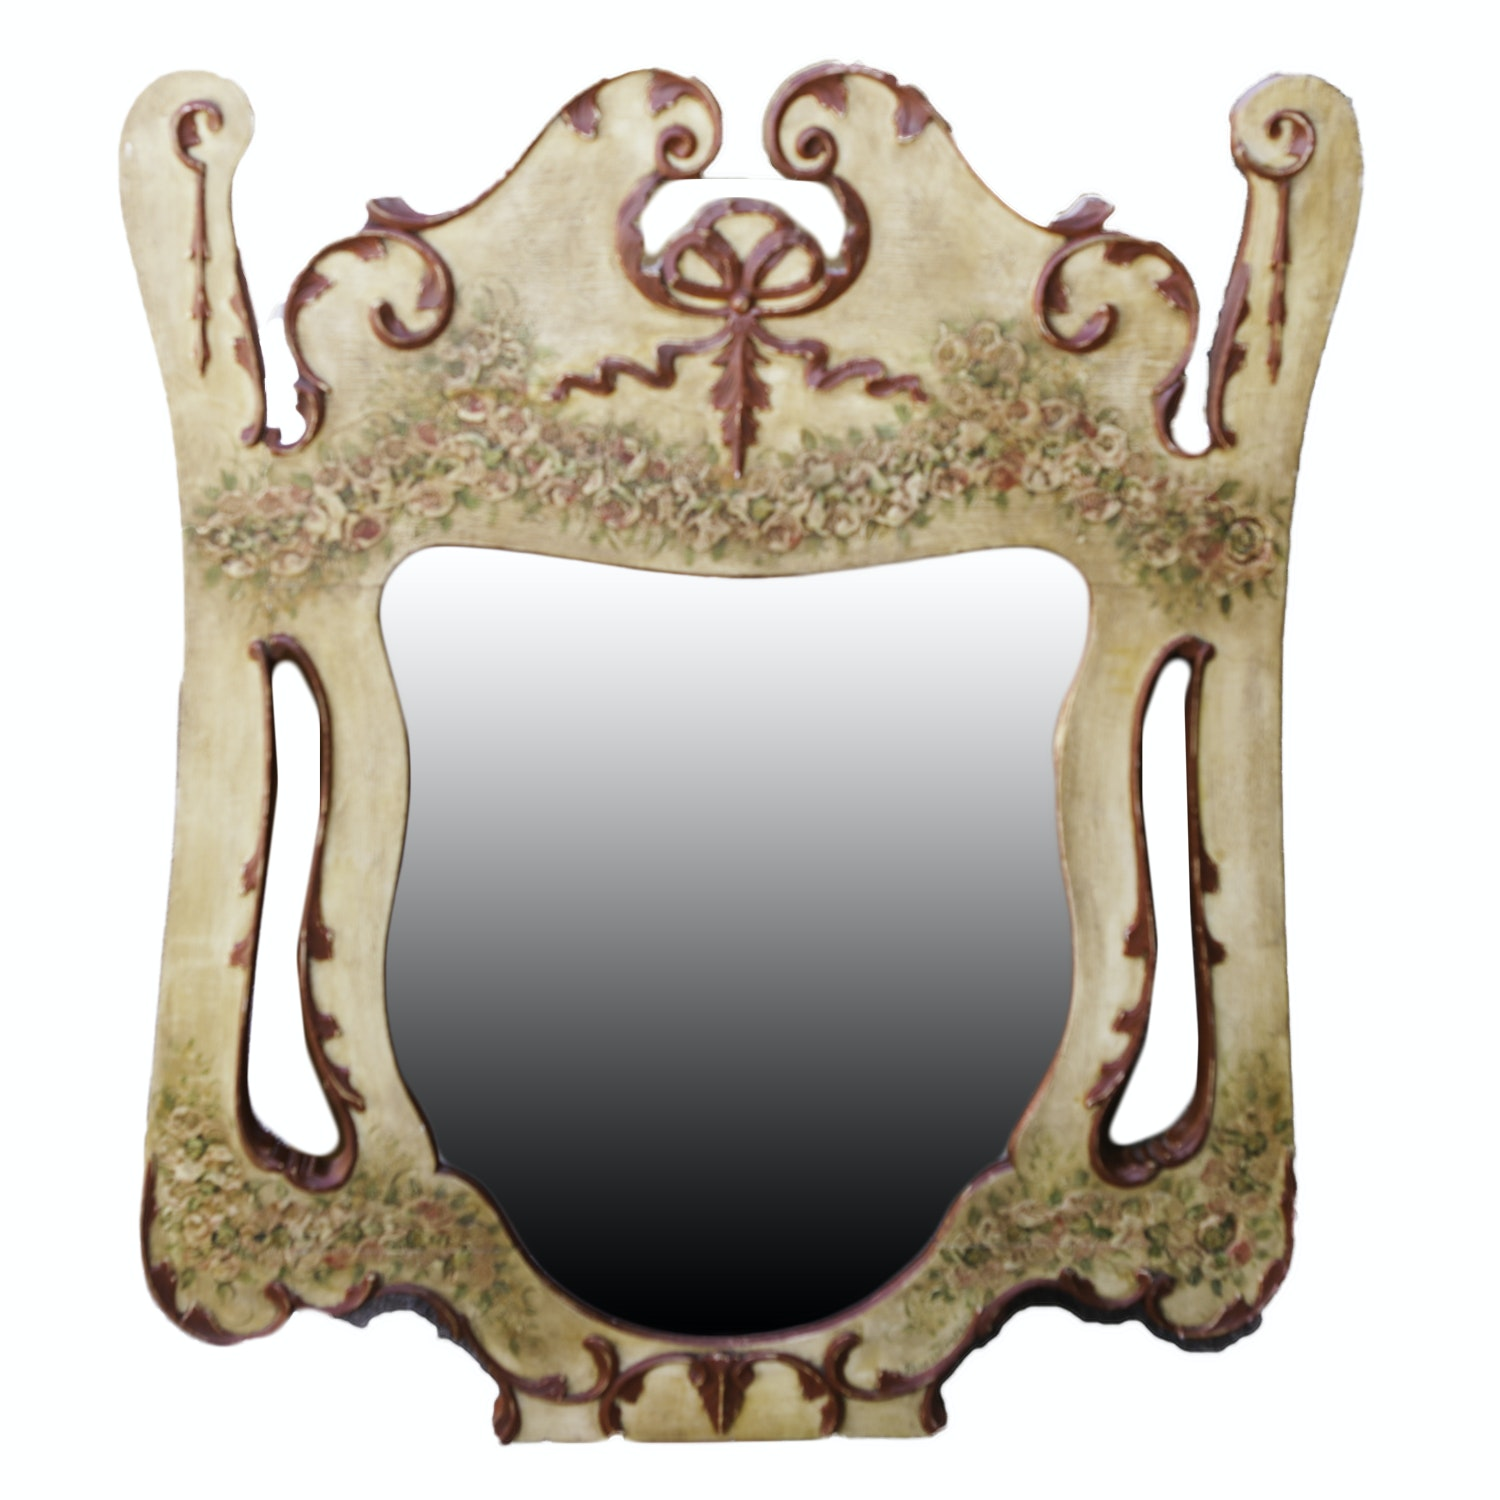 Vintage Neo-Classical Style Polychrome Mirror by Rene Humphrey